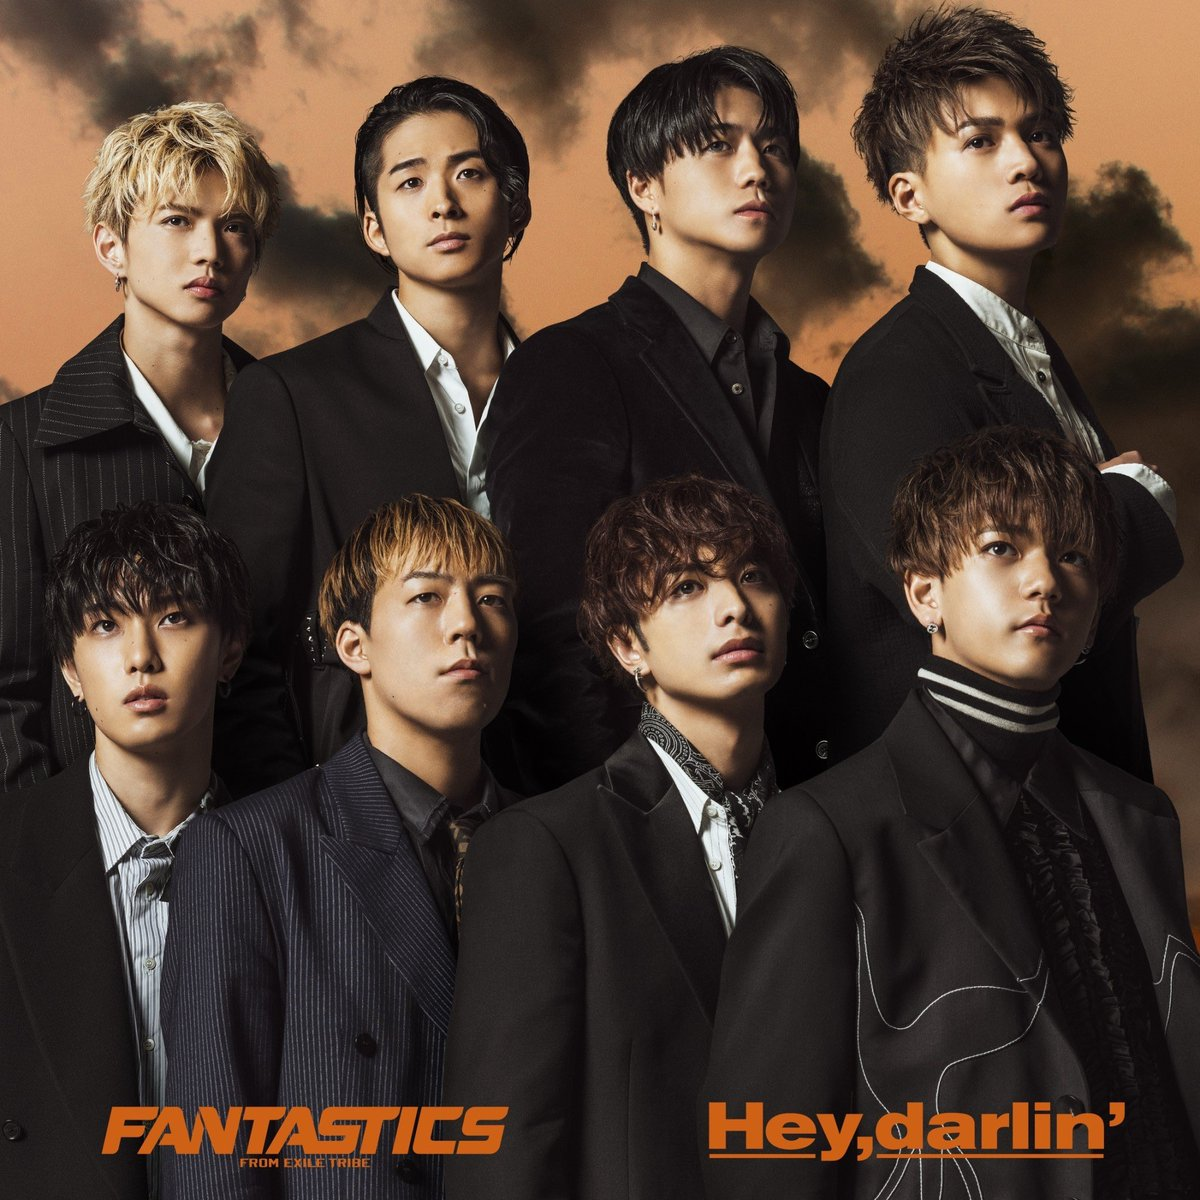 『FANTASTICS from EXILE TRIBE - The Only One』収録の『Hey, darlin'』ジャケット